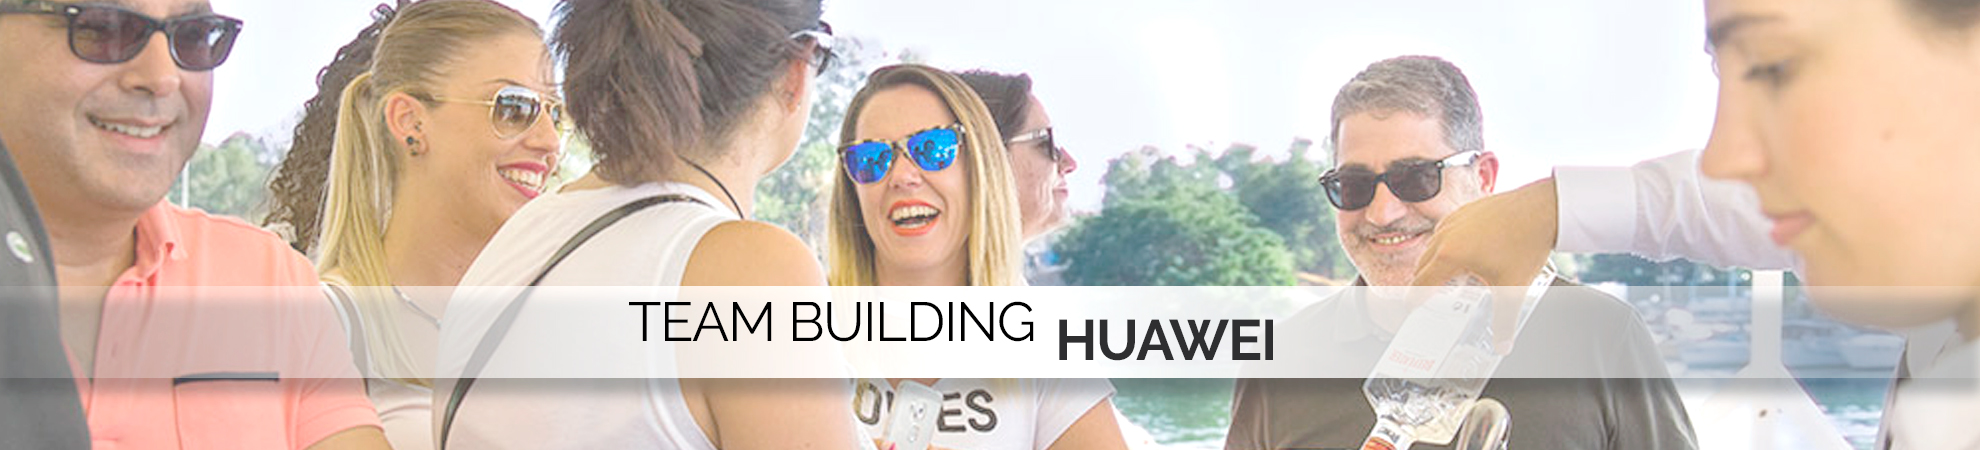 Team building huawei